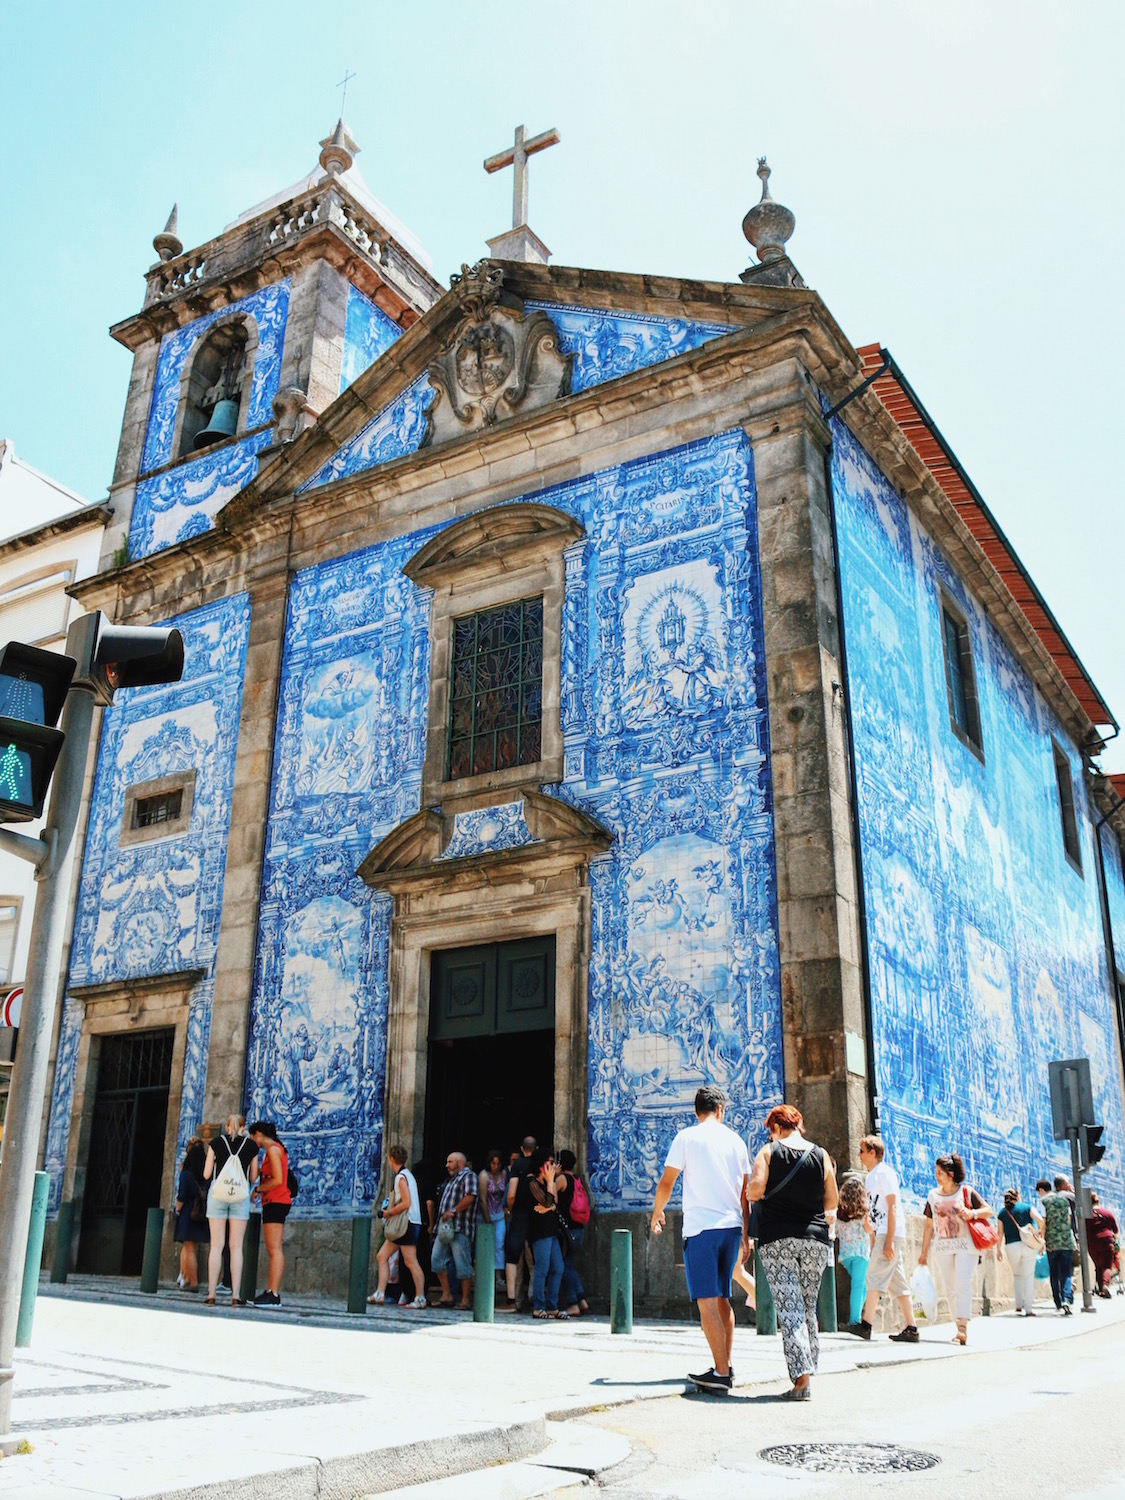 Travel-Diary_A-Long-Weekend-In-Porto_by-Meanwhile-in-Awesometown_Mens-Fashion-and-Lifestyle-Blog-from-Austria_Church-Azulejo-Porto